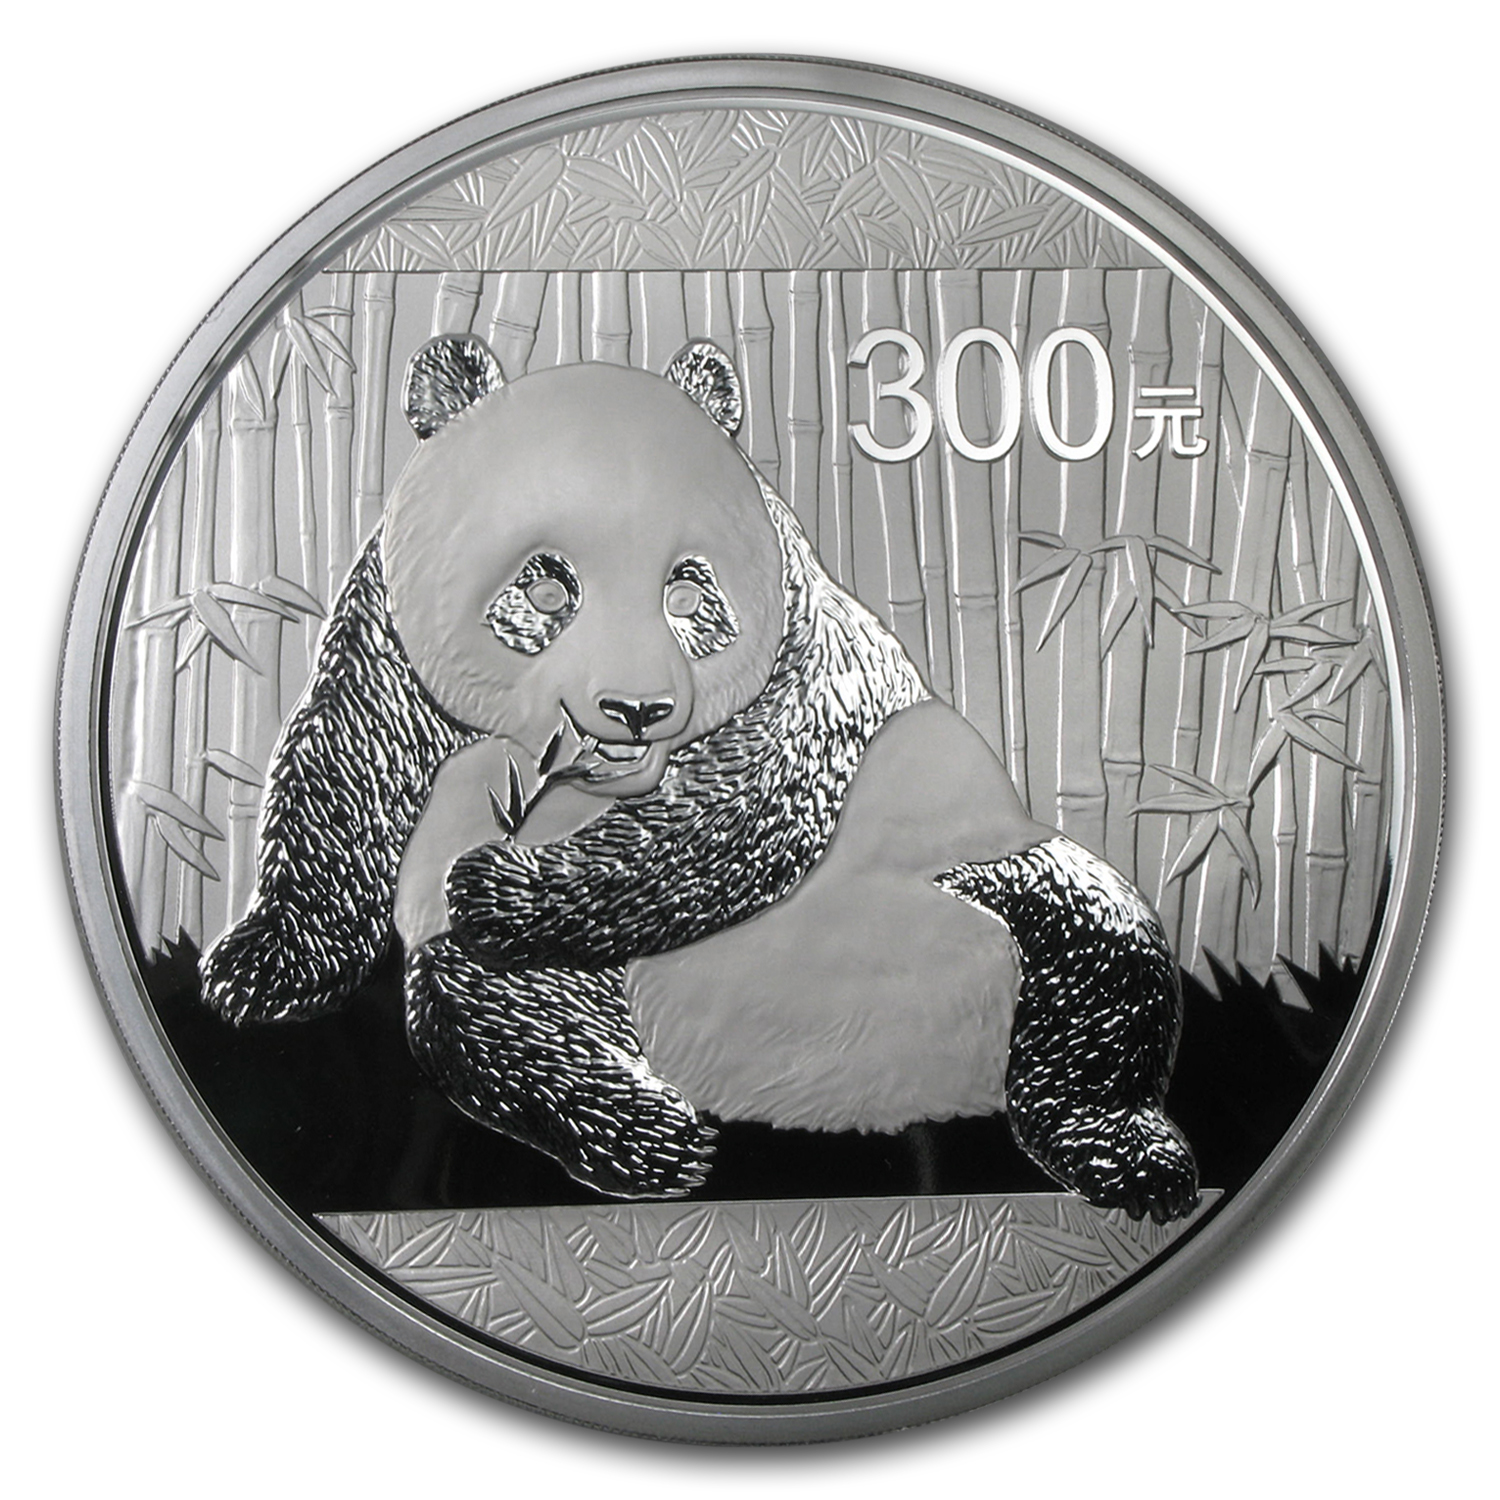 2015 China 1 kilo Silver Panda Proof (w/Box & COA)